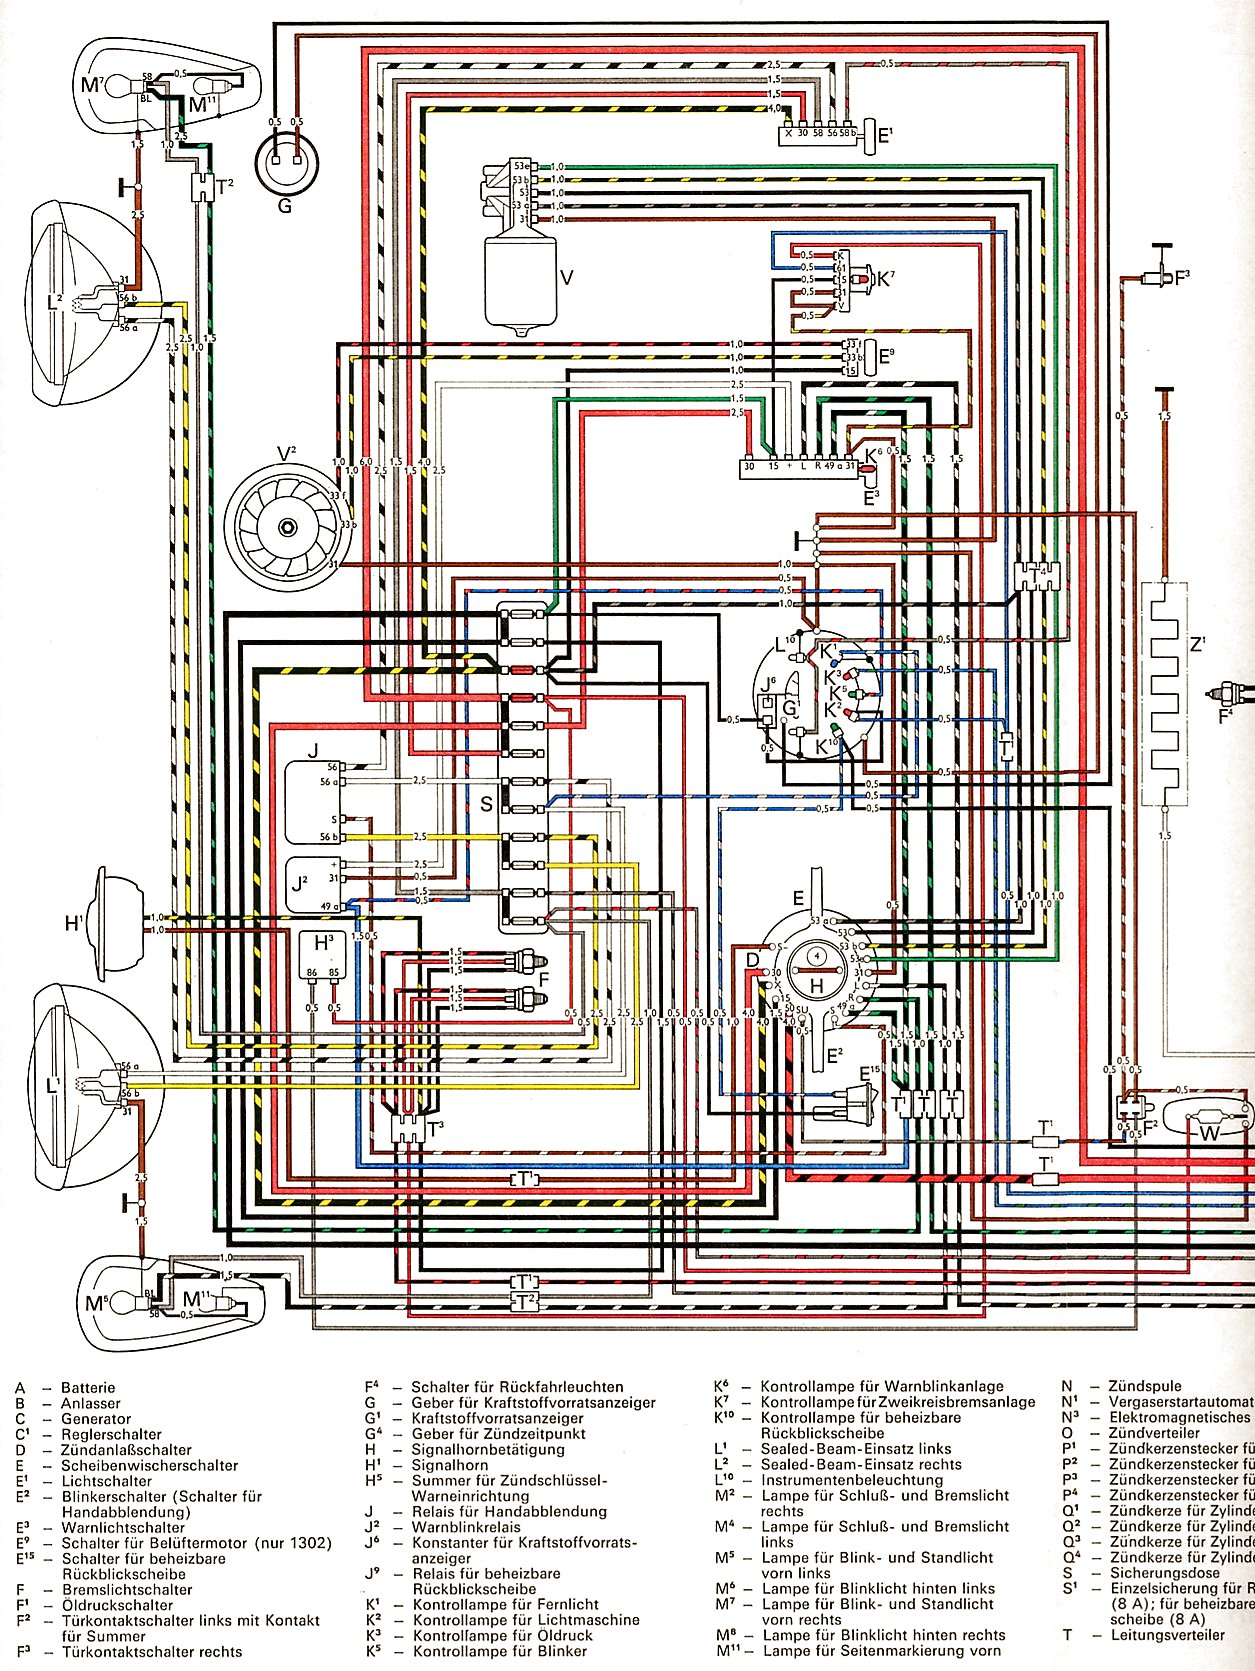 72 vw beetle wiring diagram wiring diagram rh blaknwyt co 73 vw thing wiring diagram 73 vw beetle wiring diagram